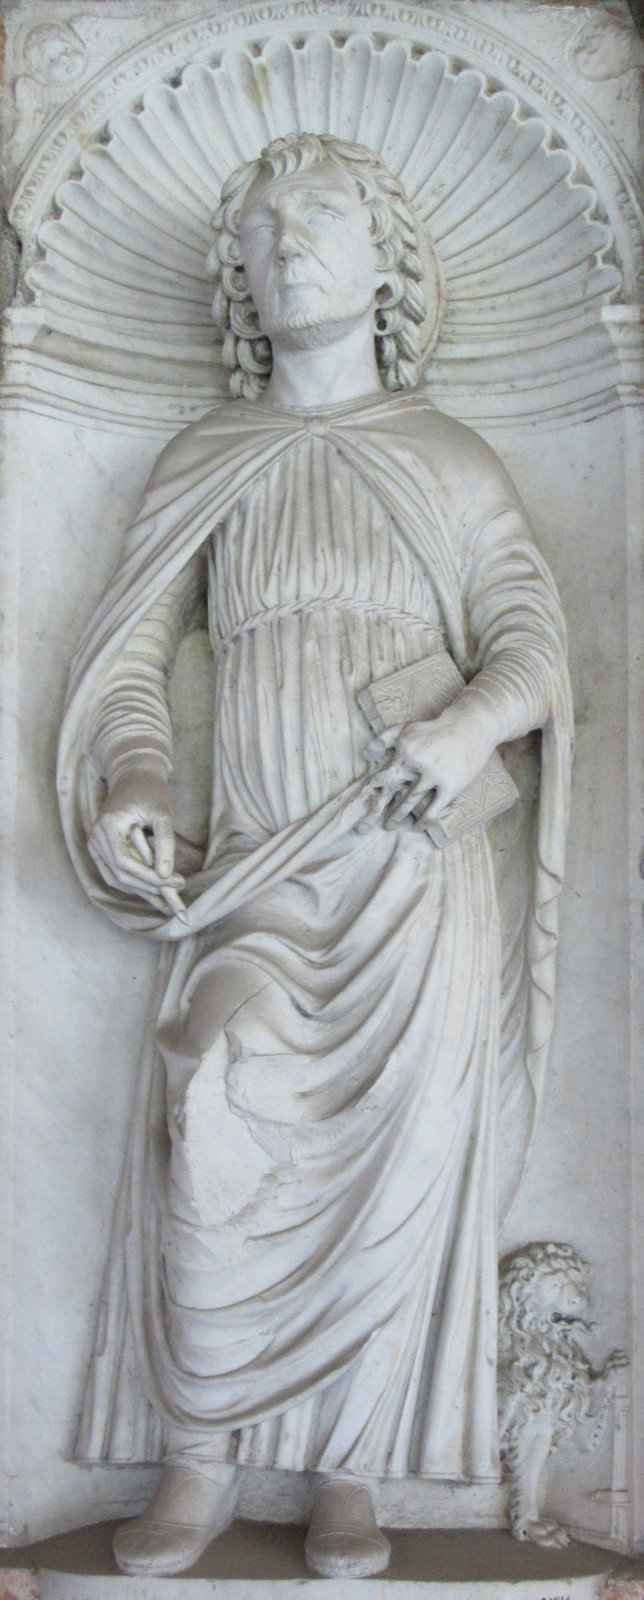 Relief, um 1485, im Kreuzgang der Basilika San Giovanni in Laterano in Rom